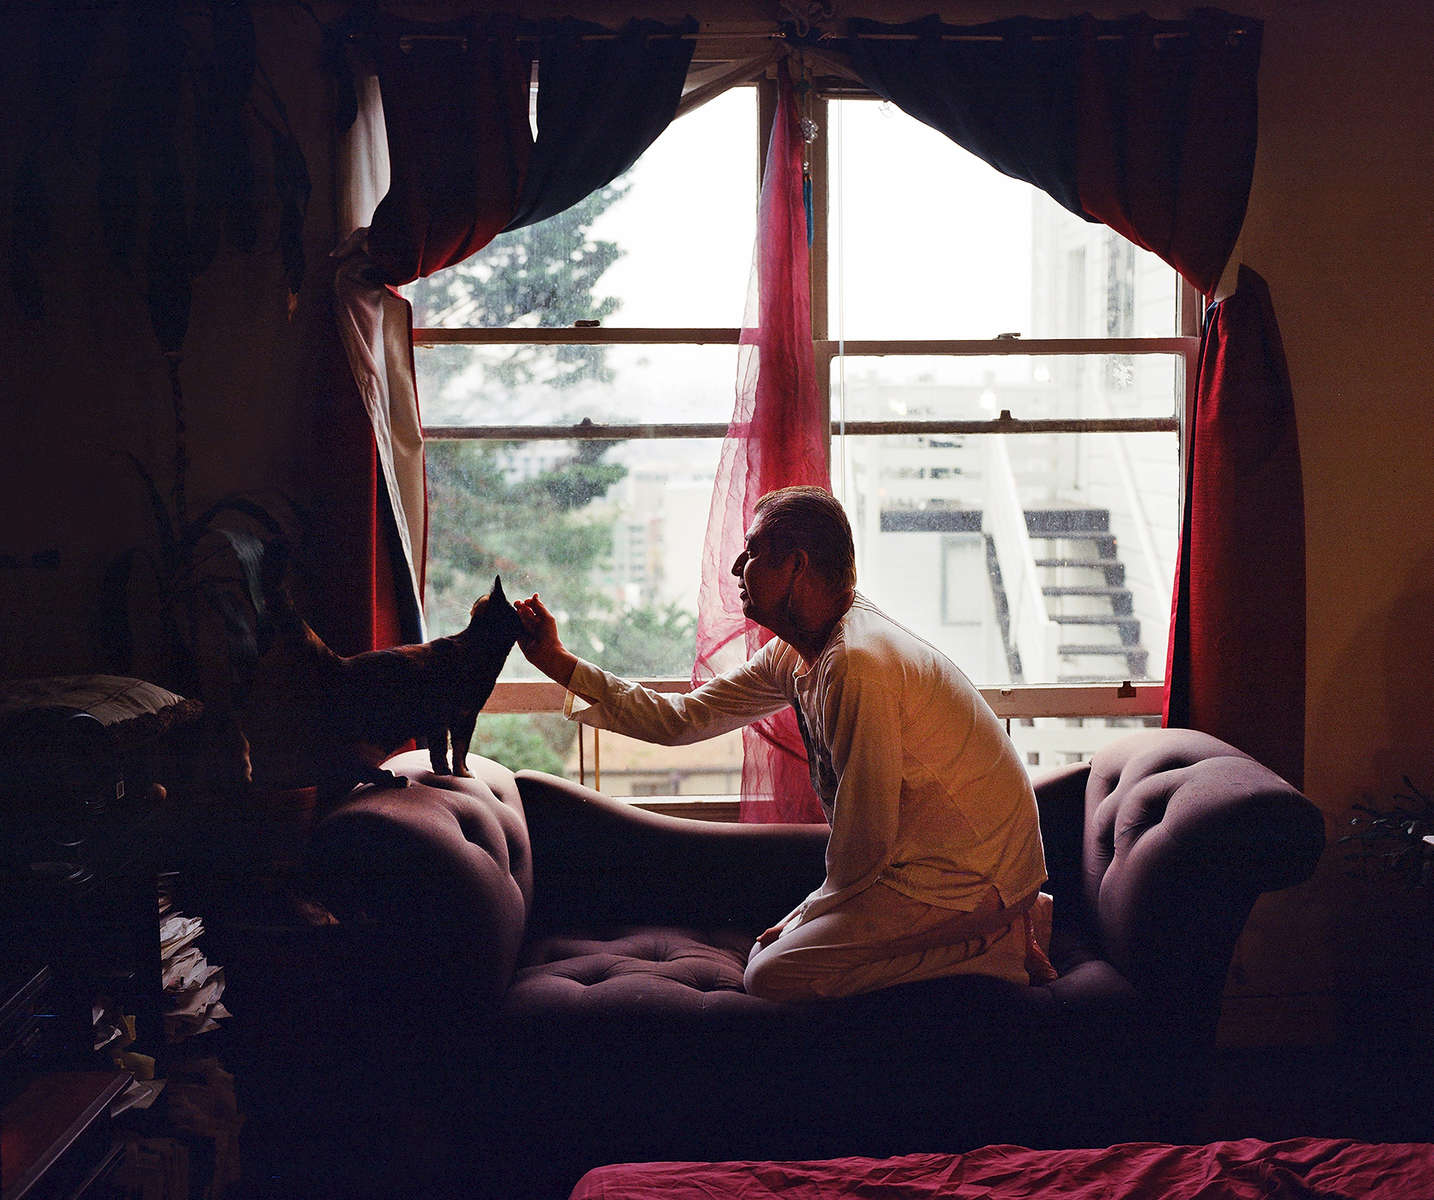 Jesus Guillen pets his cat in his apartment in San Francisco, Calif. on November 11, 2016. Guillen was one of the men featured in the Chronicle's first feature film called Last Men Standing about long-term HIV survivors.